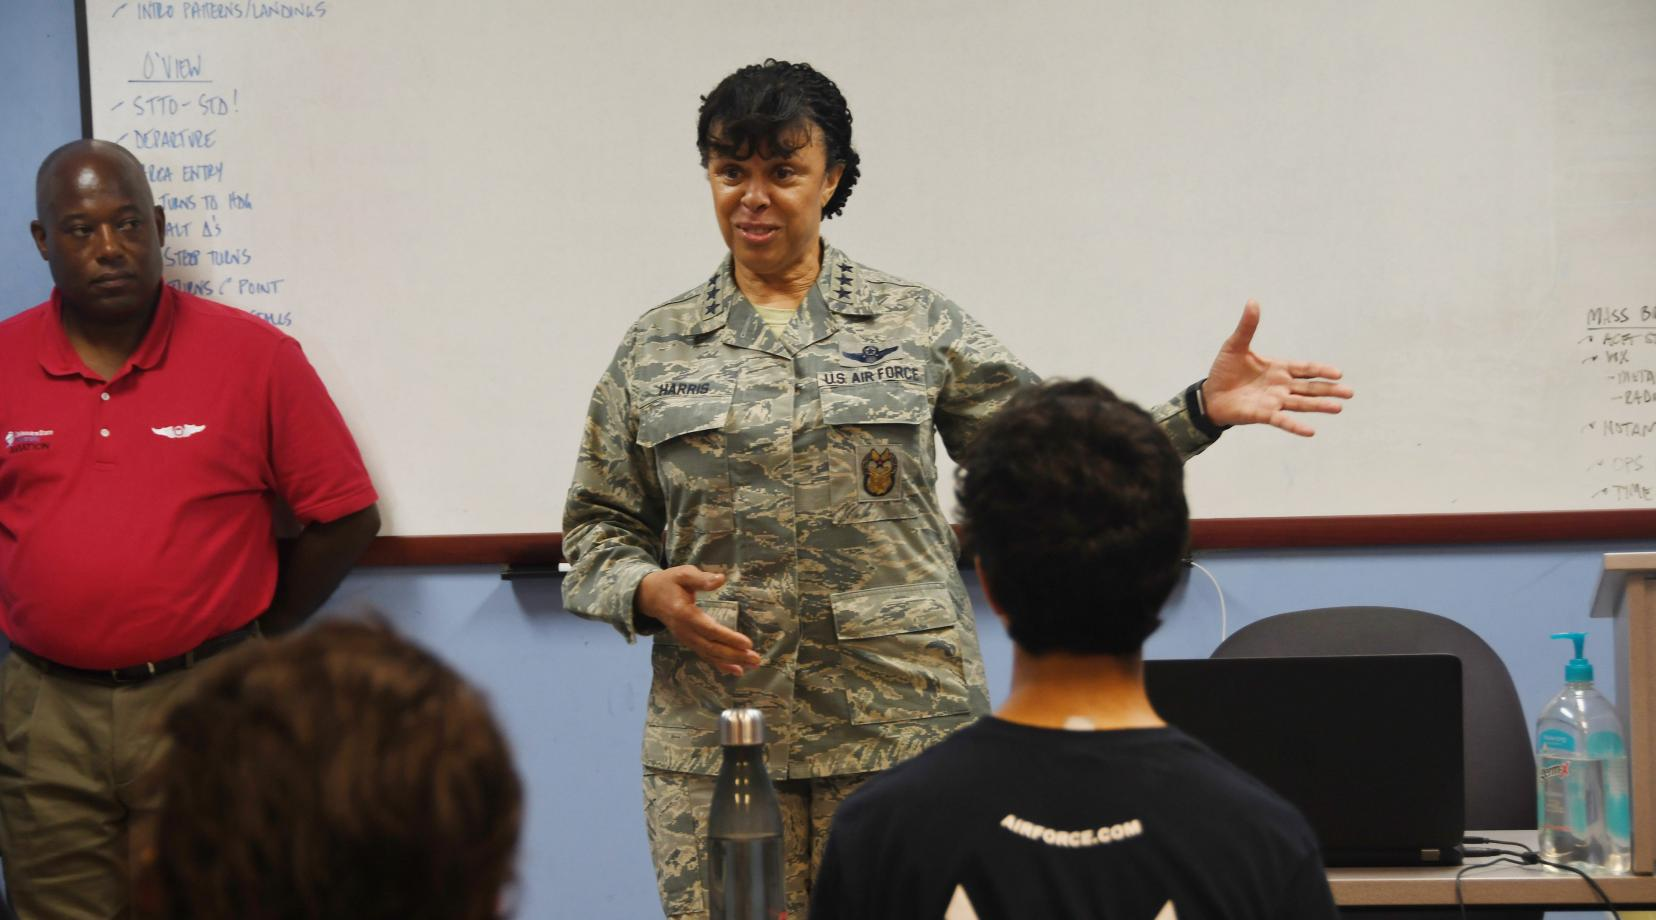 <p>Lt. Gen. Stayce Harris, the highest ranking African-American femaie pilot in the U.S. Air Force, speaks to a group of ACE Program trainees at the Delaware Airpark, site of the DSU Aviation Program.</p>